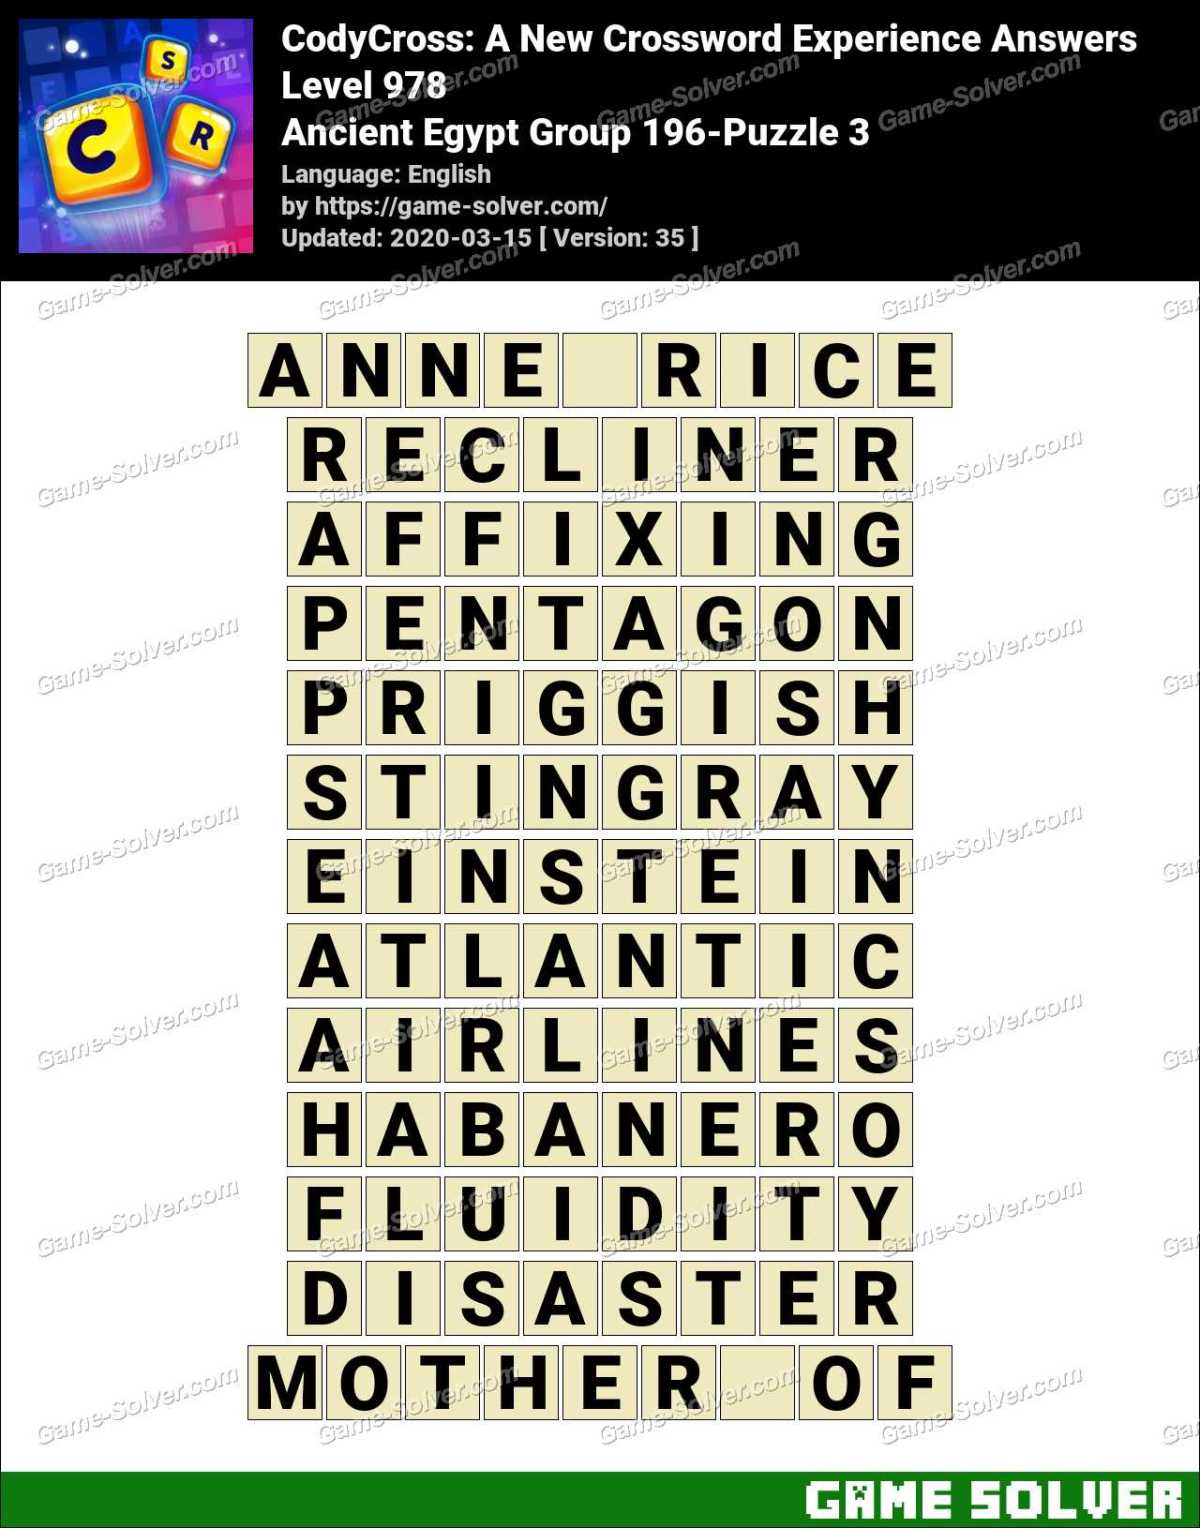 CodyCross Ancient Egypt Group 196-Puzzle 3 Answers